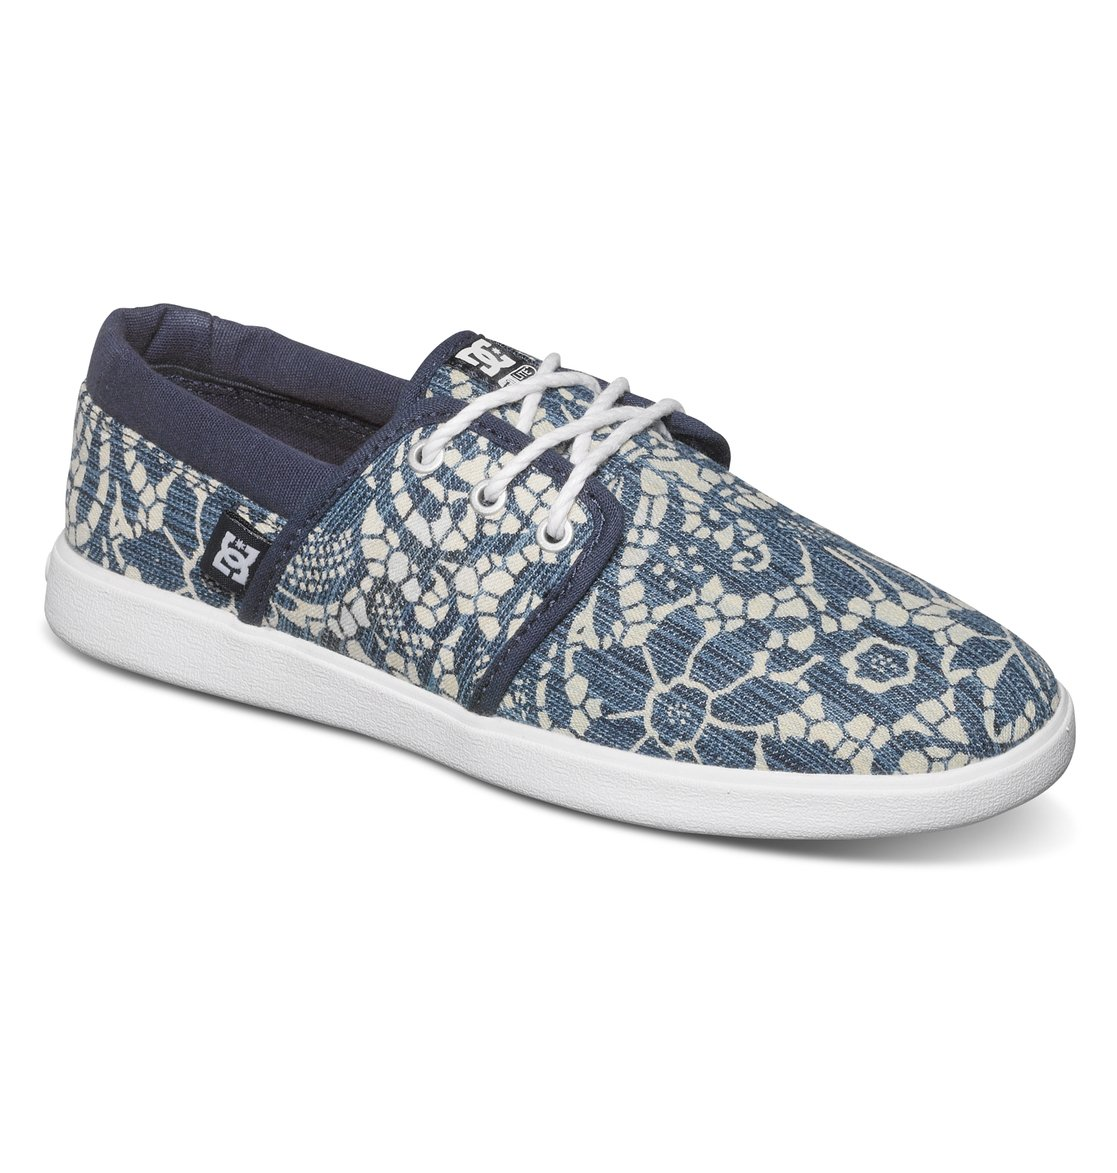 Haven TX SE - Dcshoes������ ������� ���� Haven TX SE �� DC Shoes � ������� �� ��������� ����� 2015�. ��������������: ���� �� ������������ ��������, ��������������� ���, ������� ���������� ������� ��������.<br>